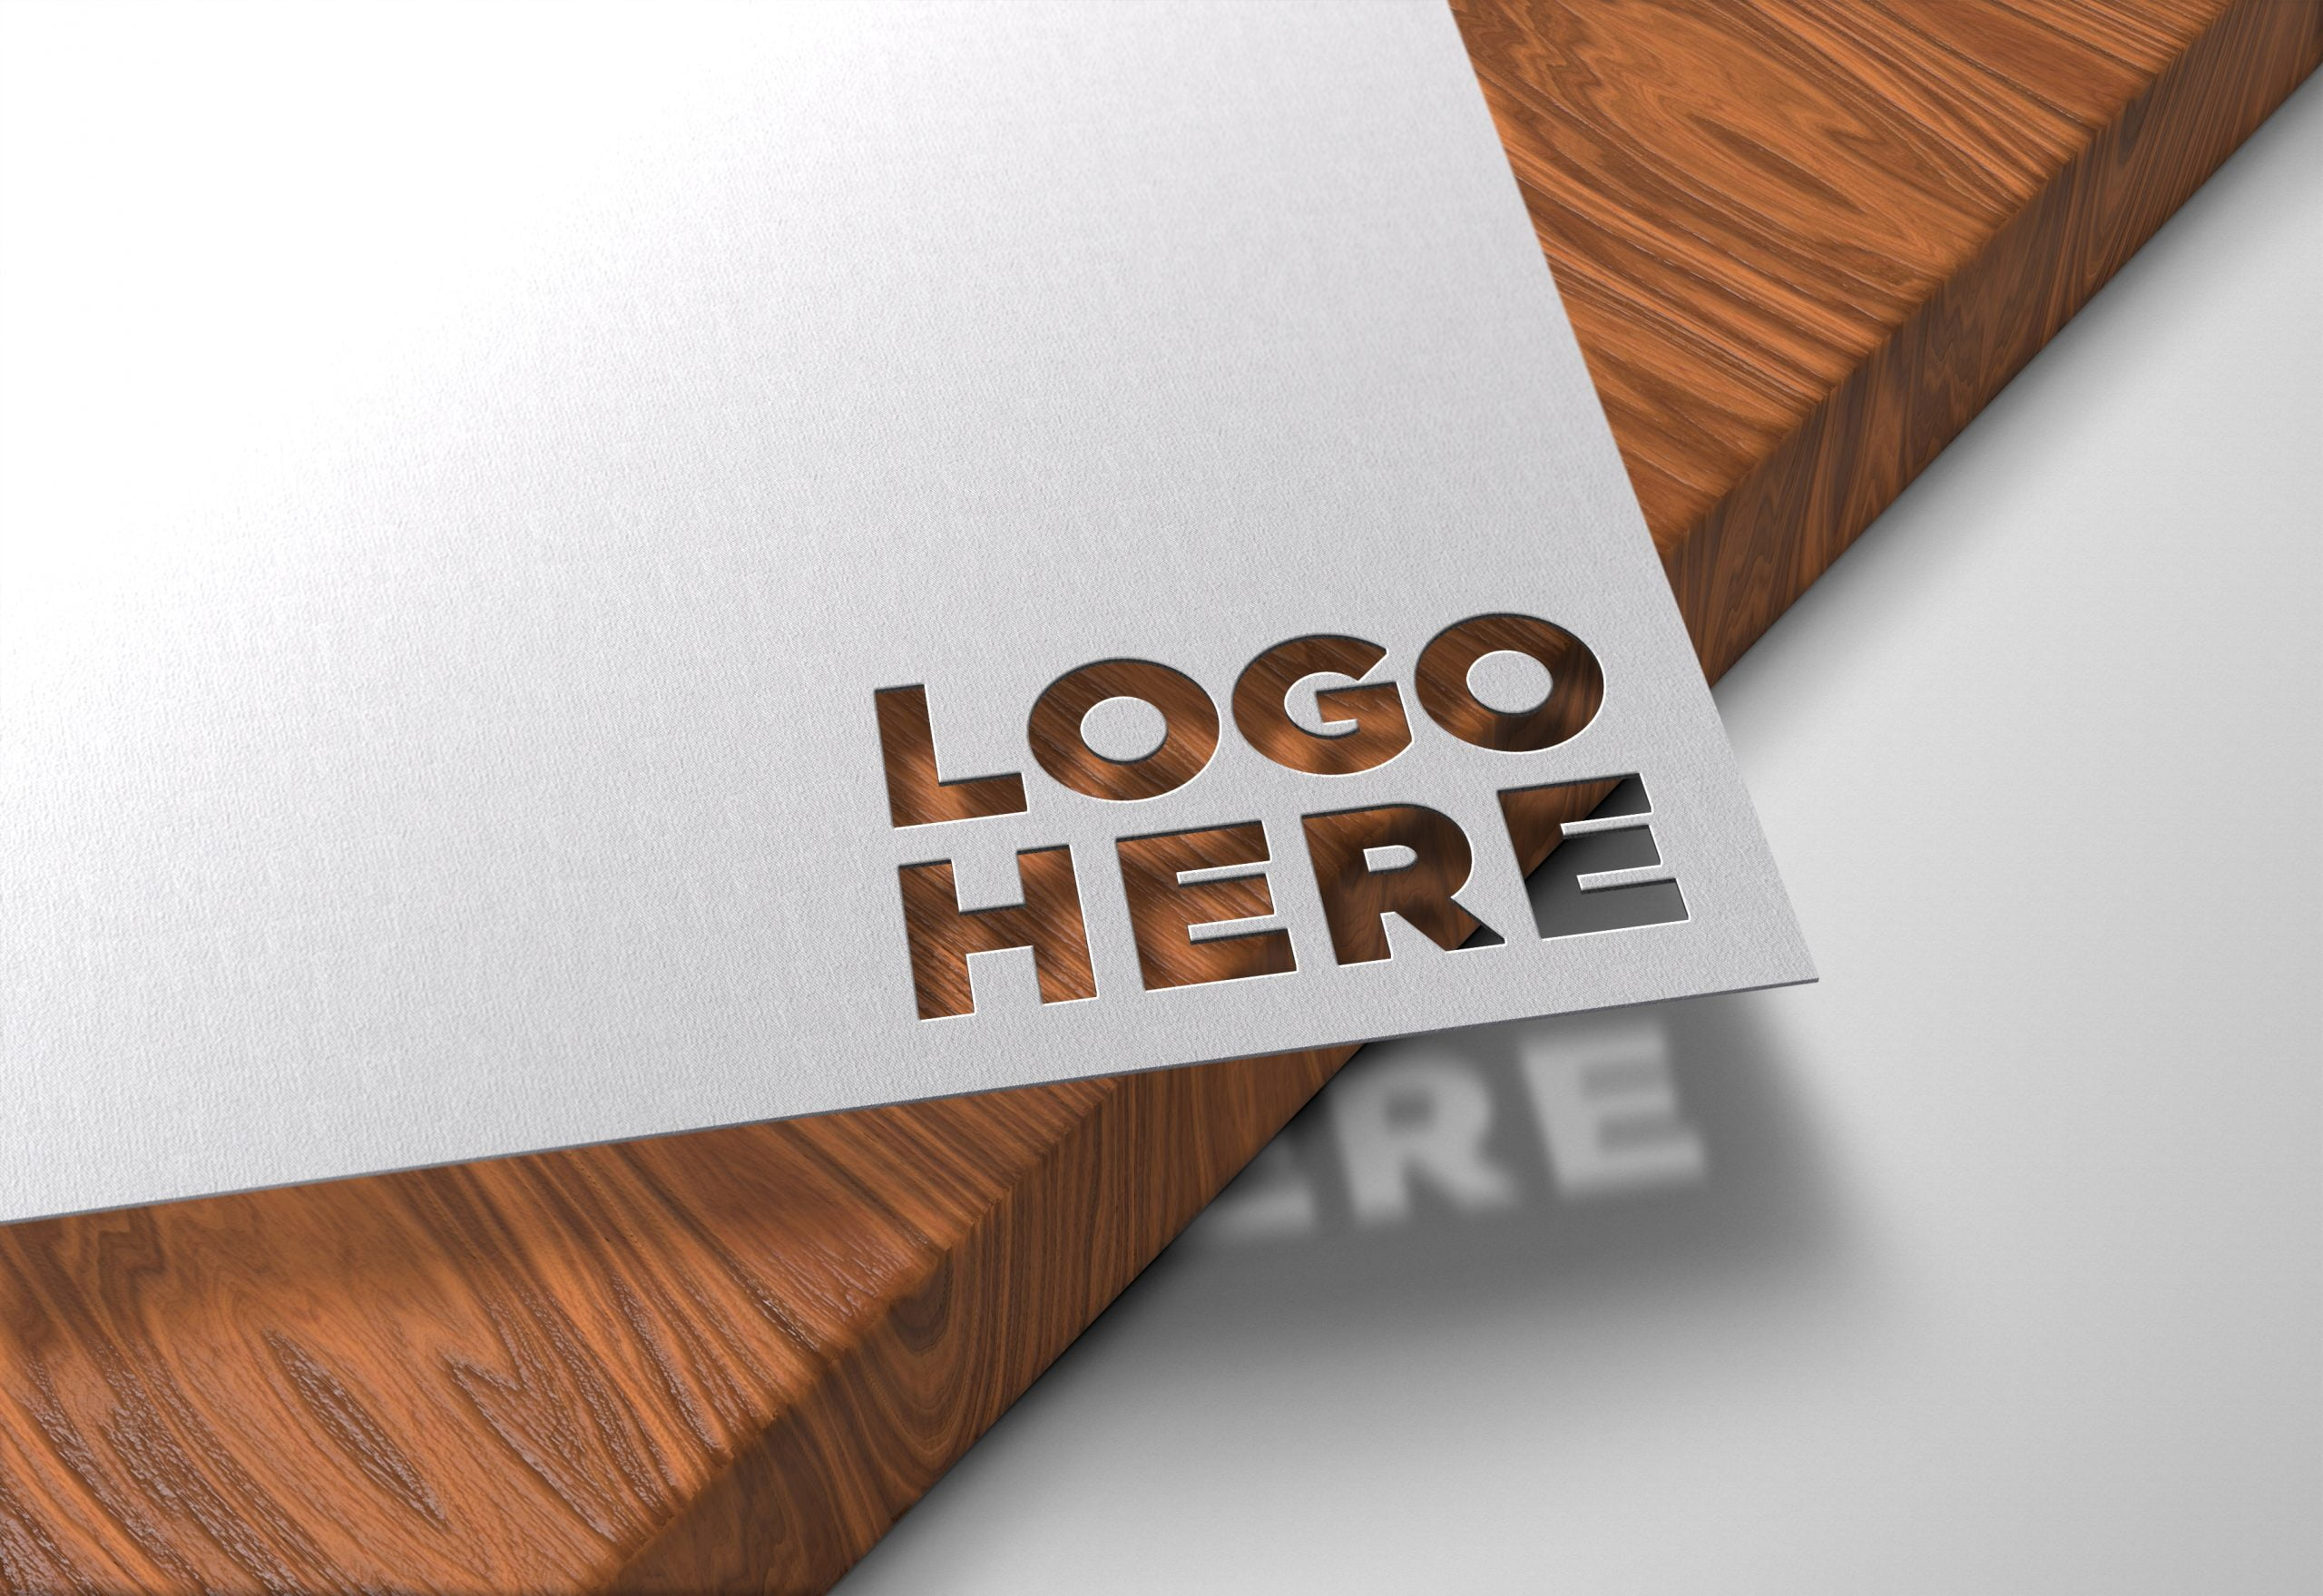 Logo-Here-Paper-Cutout-on-Wood-Logo-Mockup